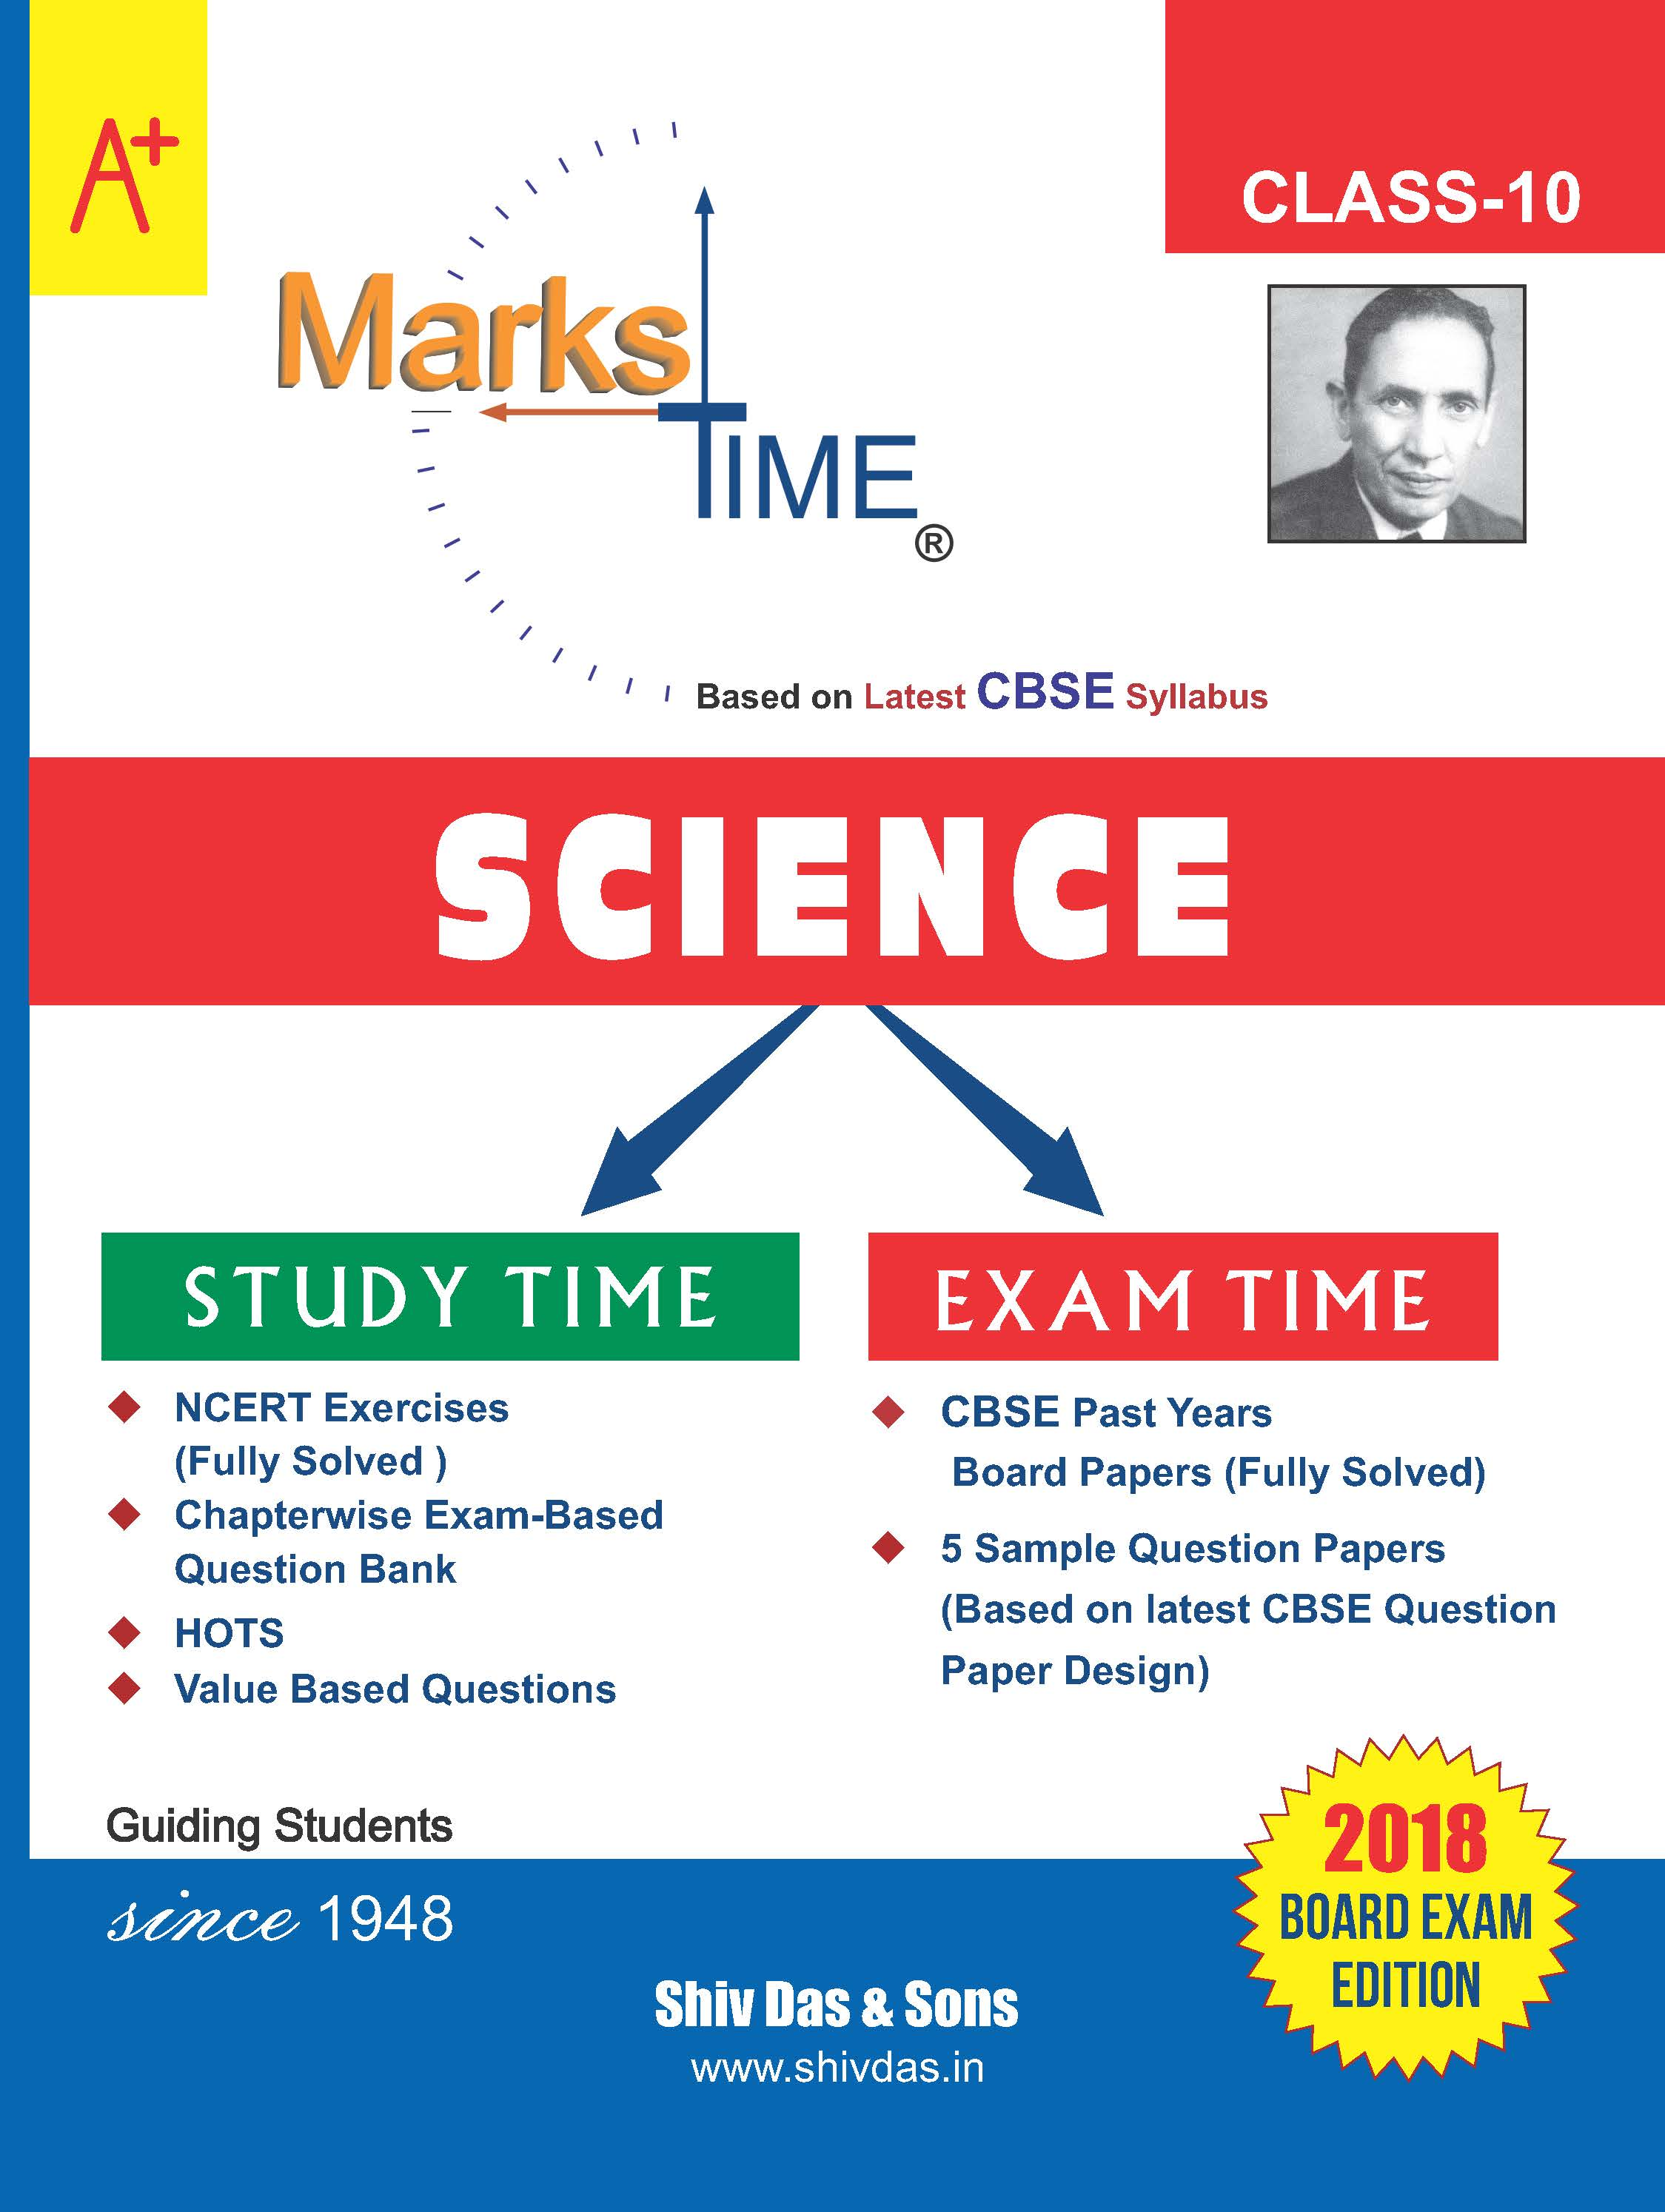 Marks Time CBSE Board Study Guide for Class 10 Science (2018 Board Exam Edition)